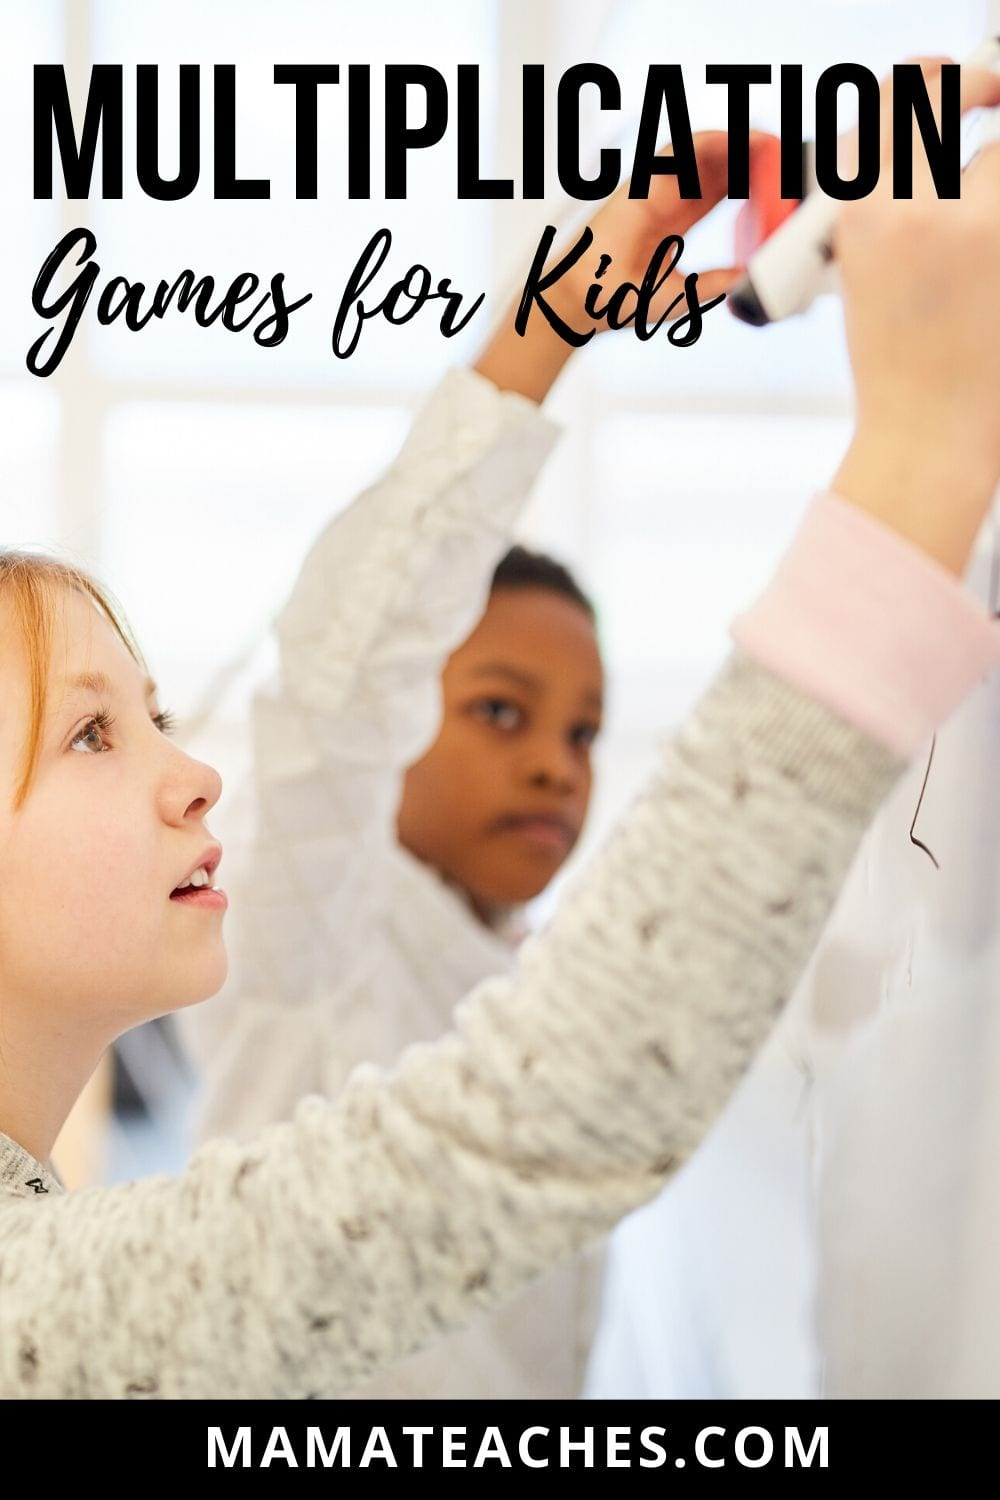 Multiplication Games for Kids - Children Working on Math Problems at a Chalkboard